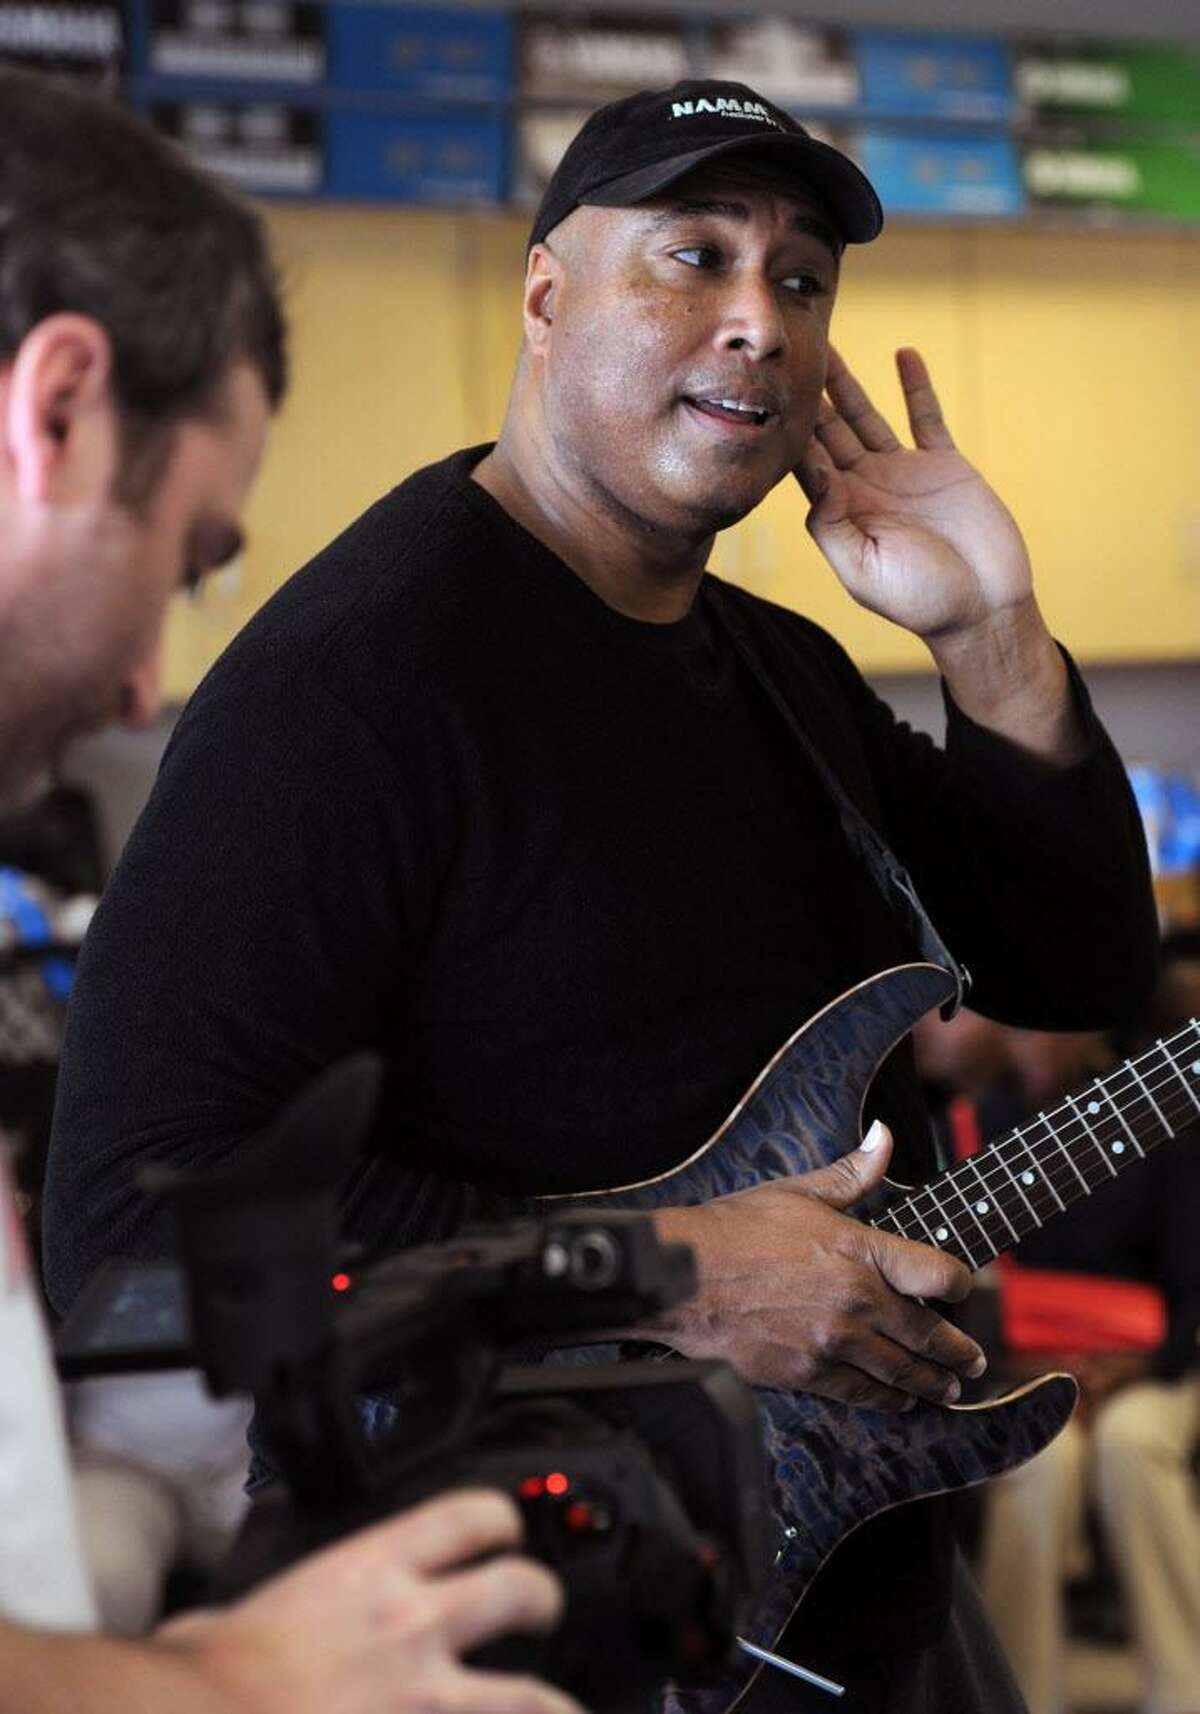 Musician and former professional baseball player, Bernie Williams worked with students at Tisdale School in Bridgeport, Conn. on Monday, March 7, 2016. Williams mentors the students as part of the national Turnaround Arts program that empowers high-need schools with arts resources, training and arts integration into other subject areas.